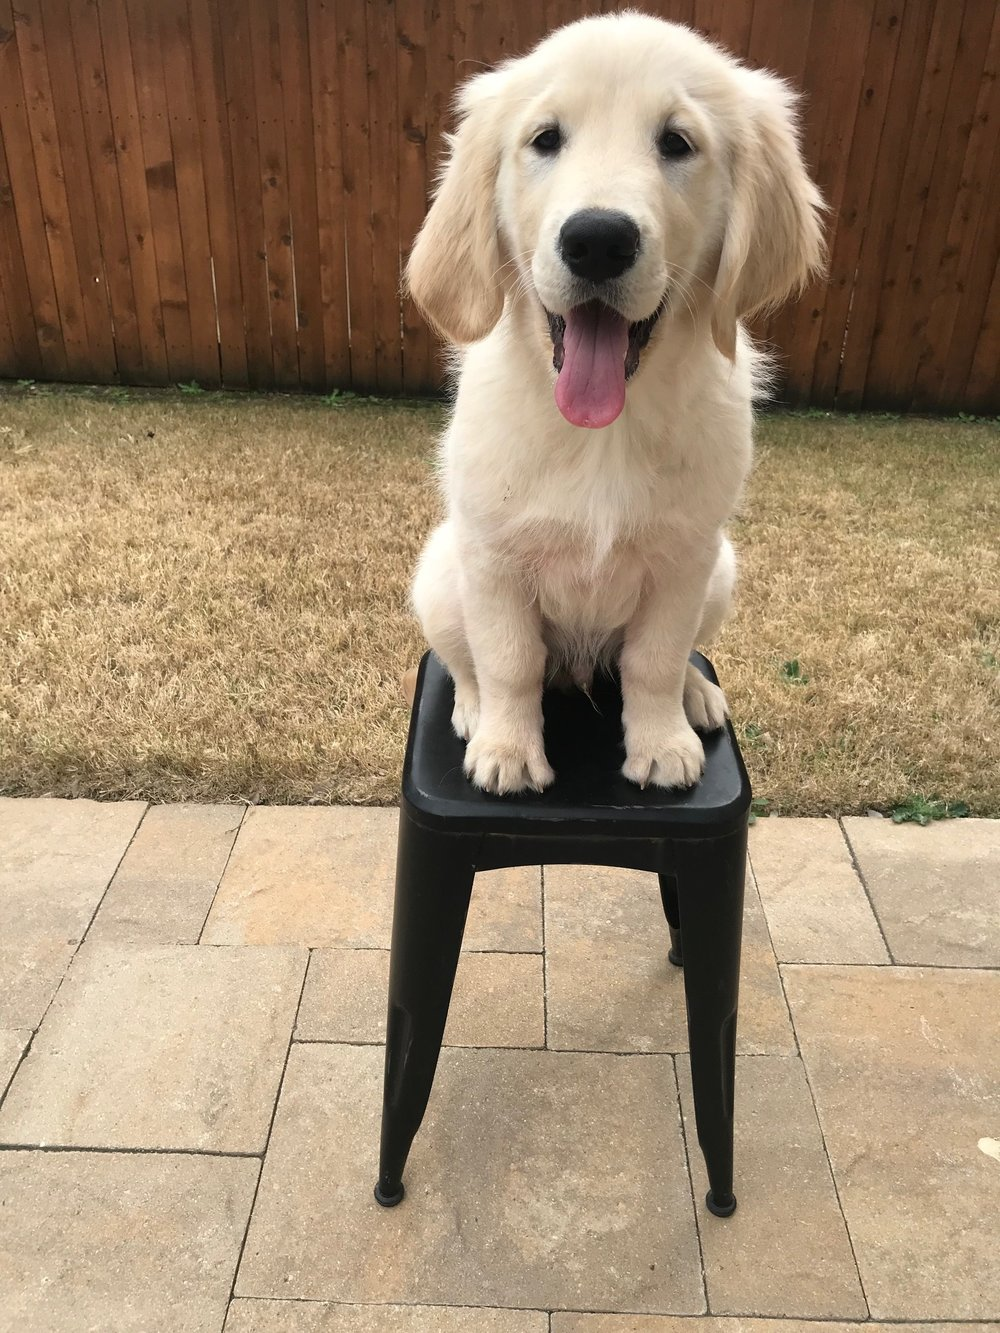 Pup Remy at 14 weeks happily working on his sit, stay and balancing skills!